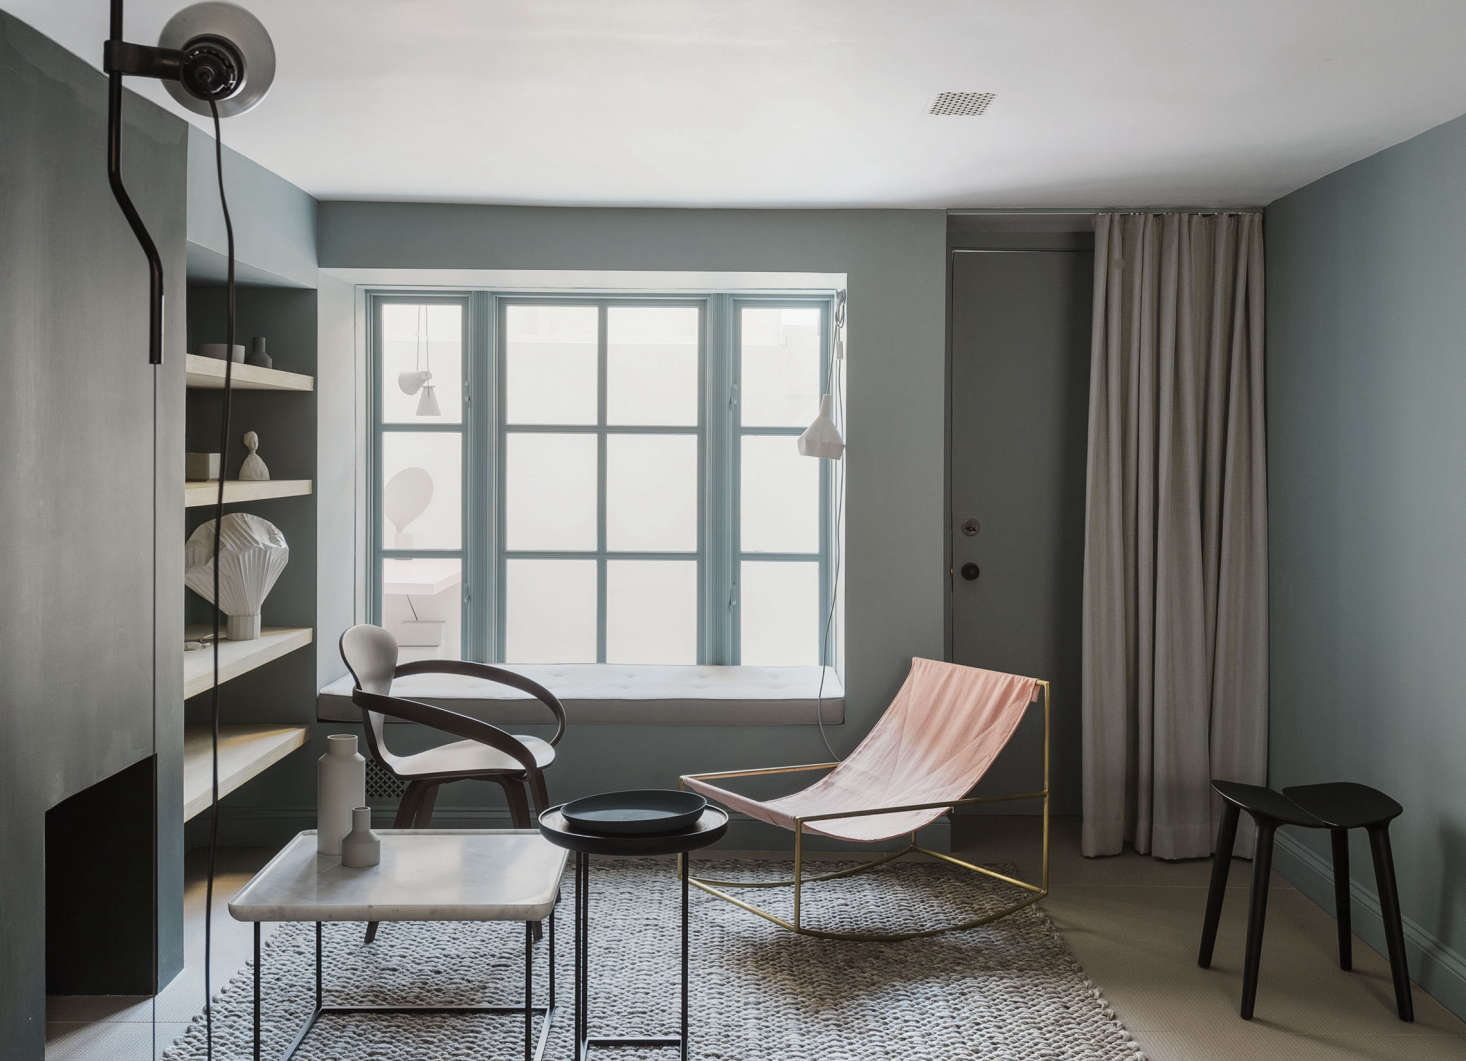 An unusually good-looking basement, as seen inA Luminous, Euro-Style Row House in Washington, DC, Courtesy of Studio Oink. Photograph byMatthew Williamsfor Remodelista; styling byAlexa Hotz.